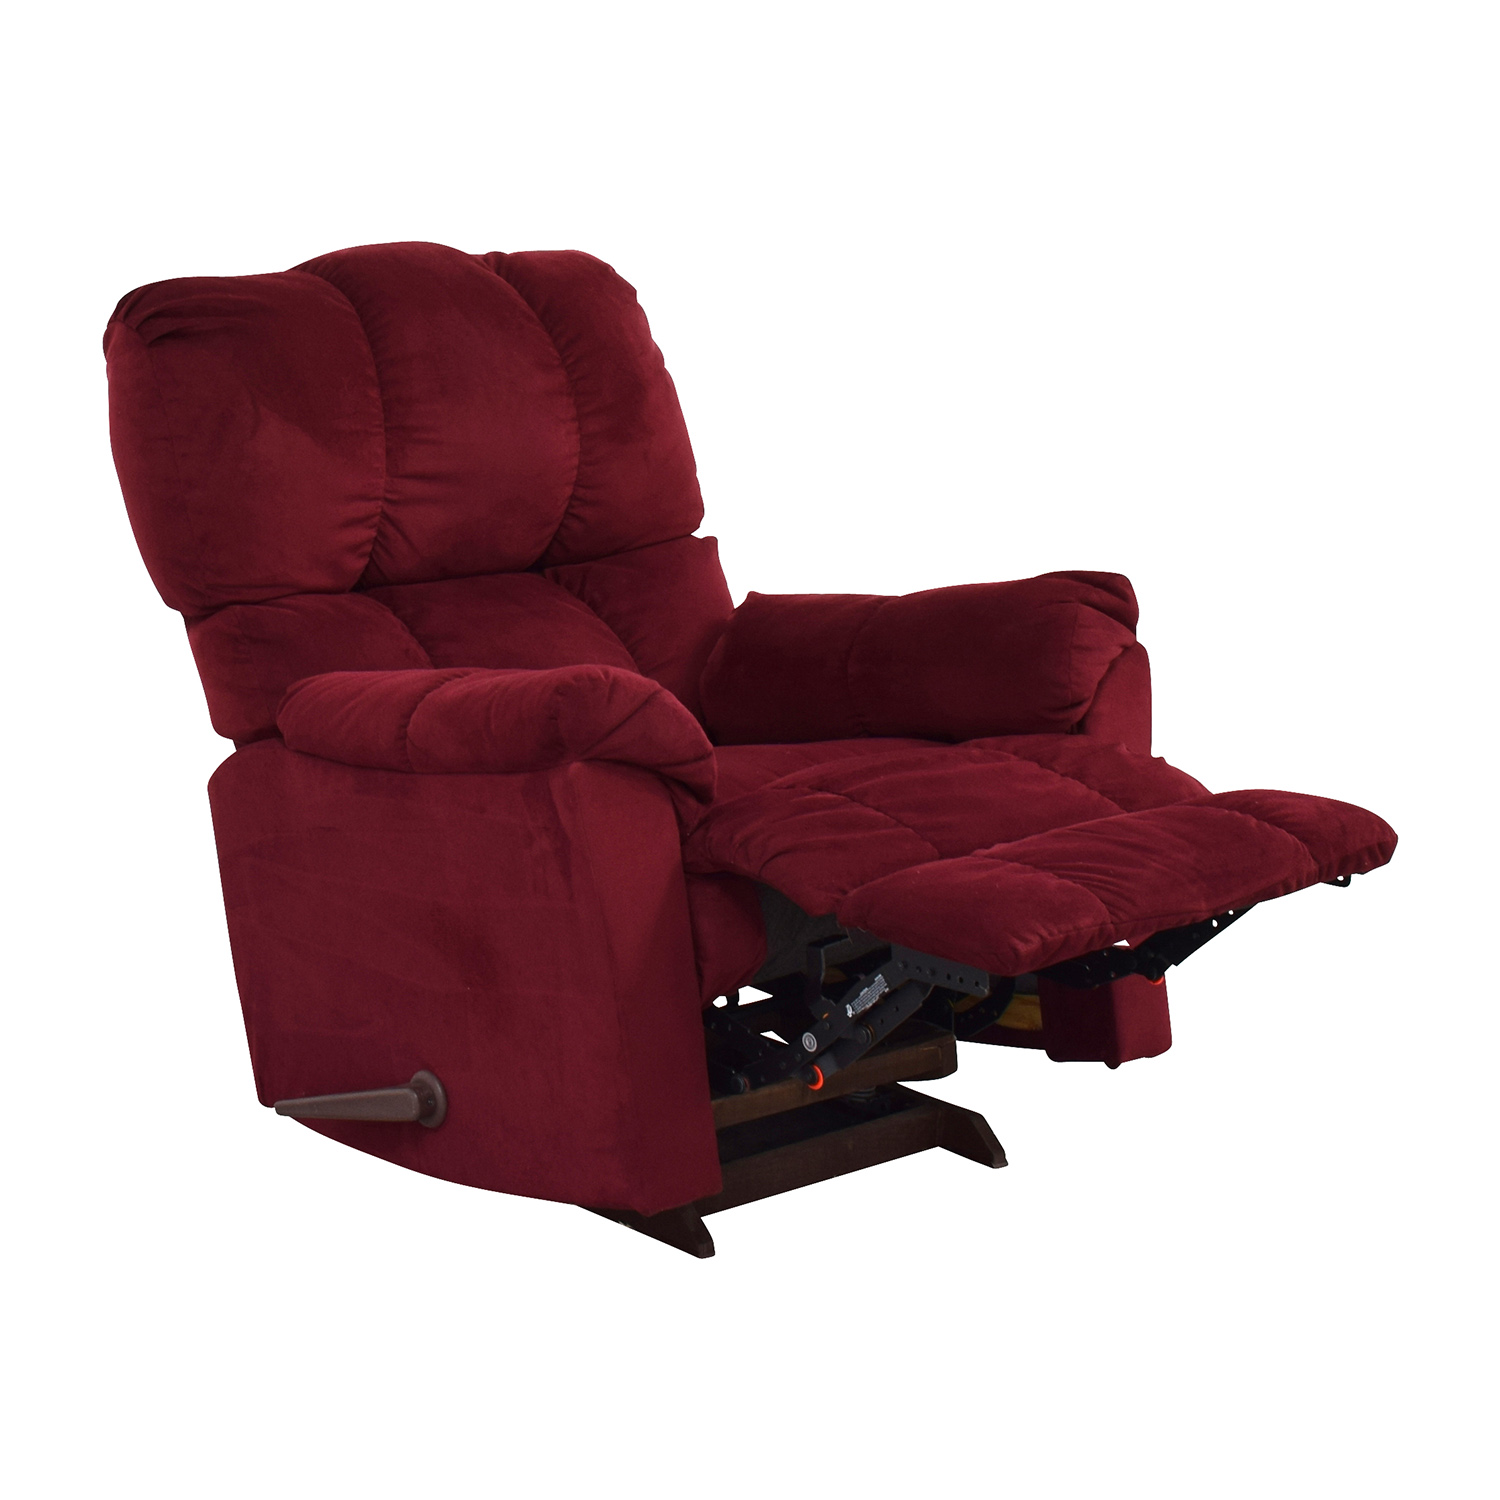 81% OFF Macys Macy s Red Recliner Arm Chair Chairs